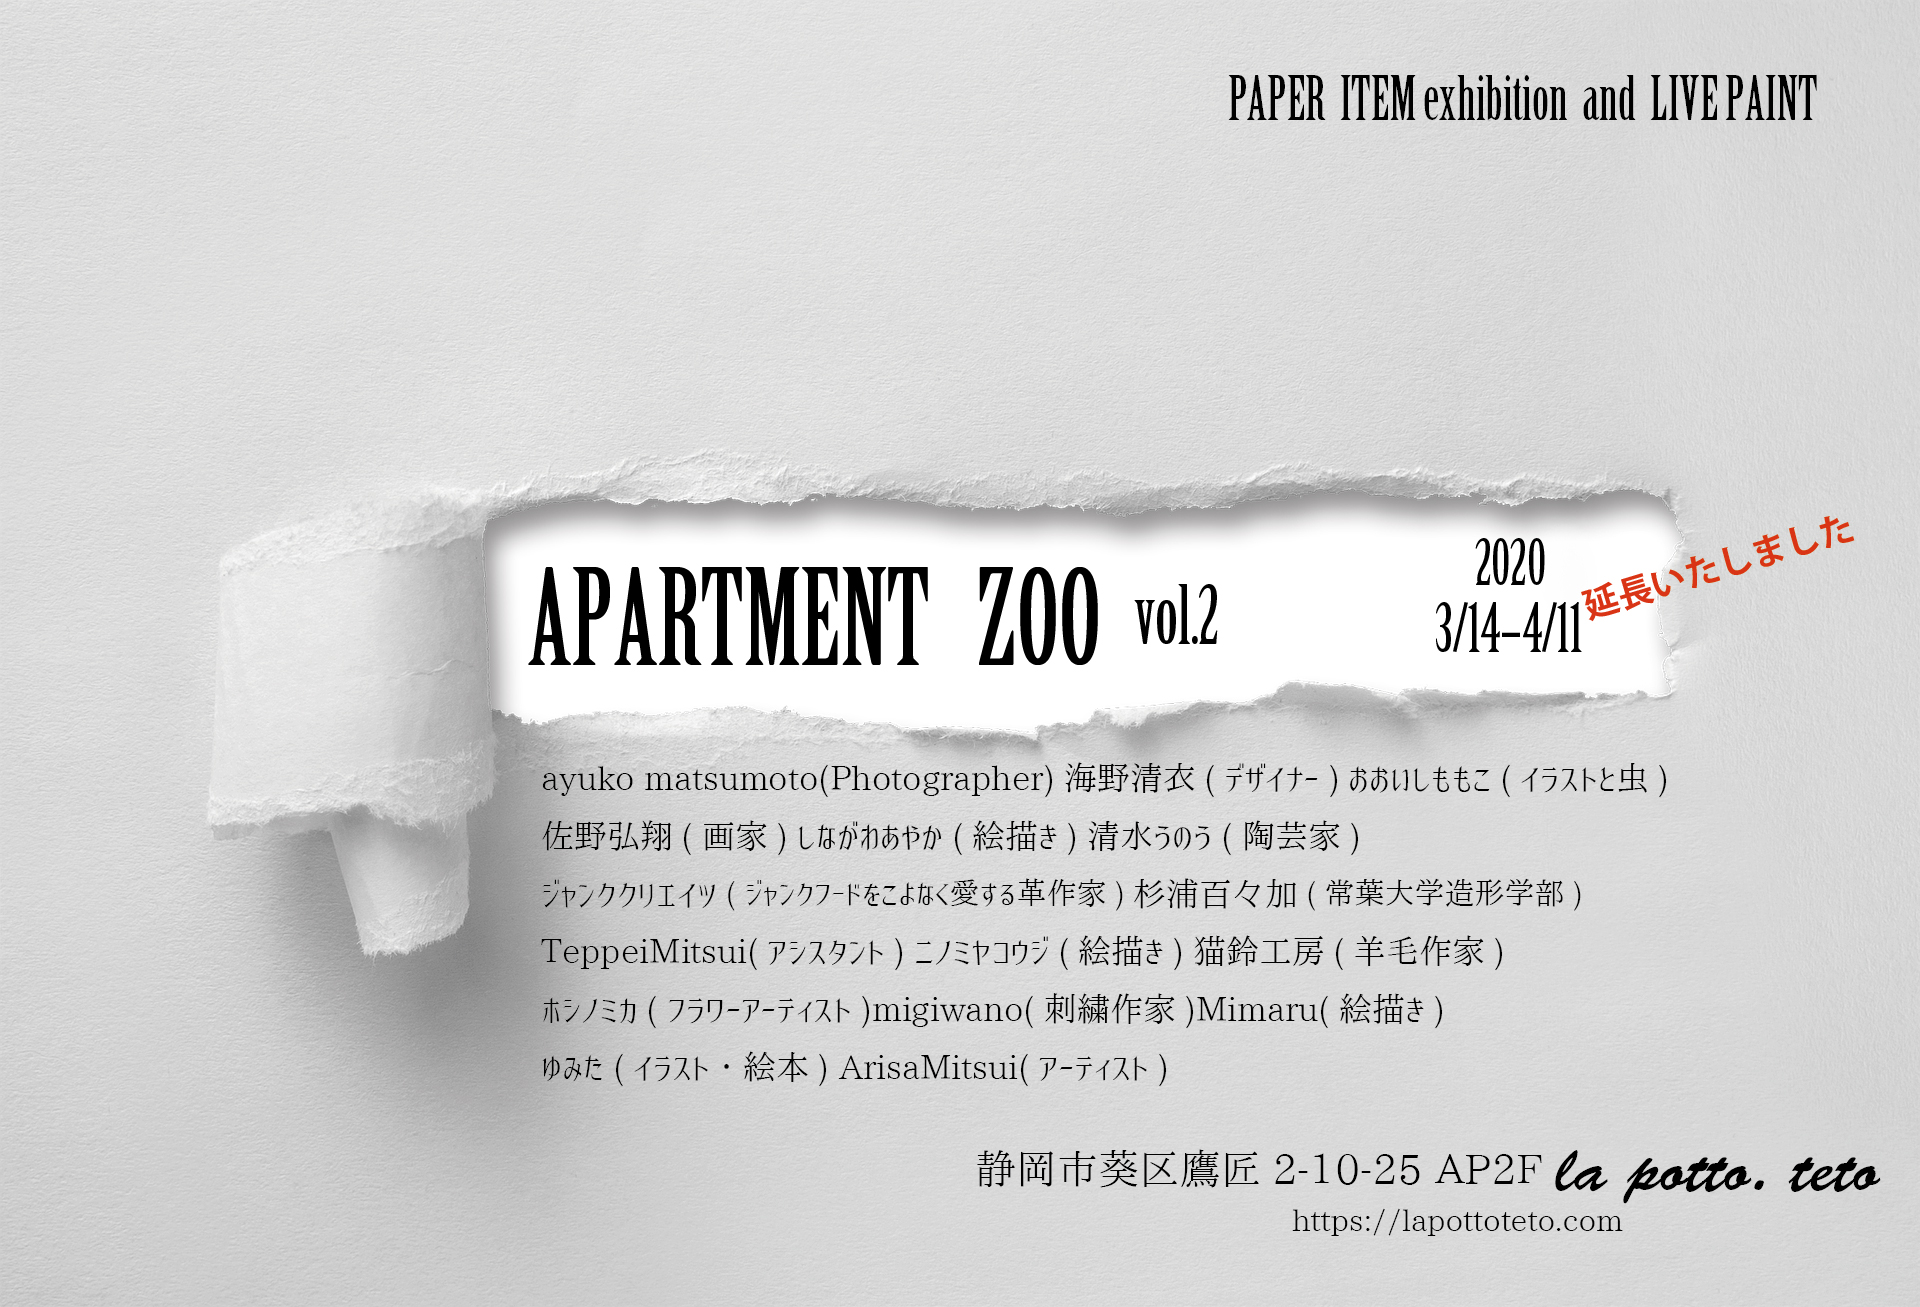 APARTMENT ZOO vol.2